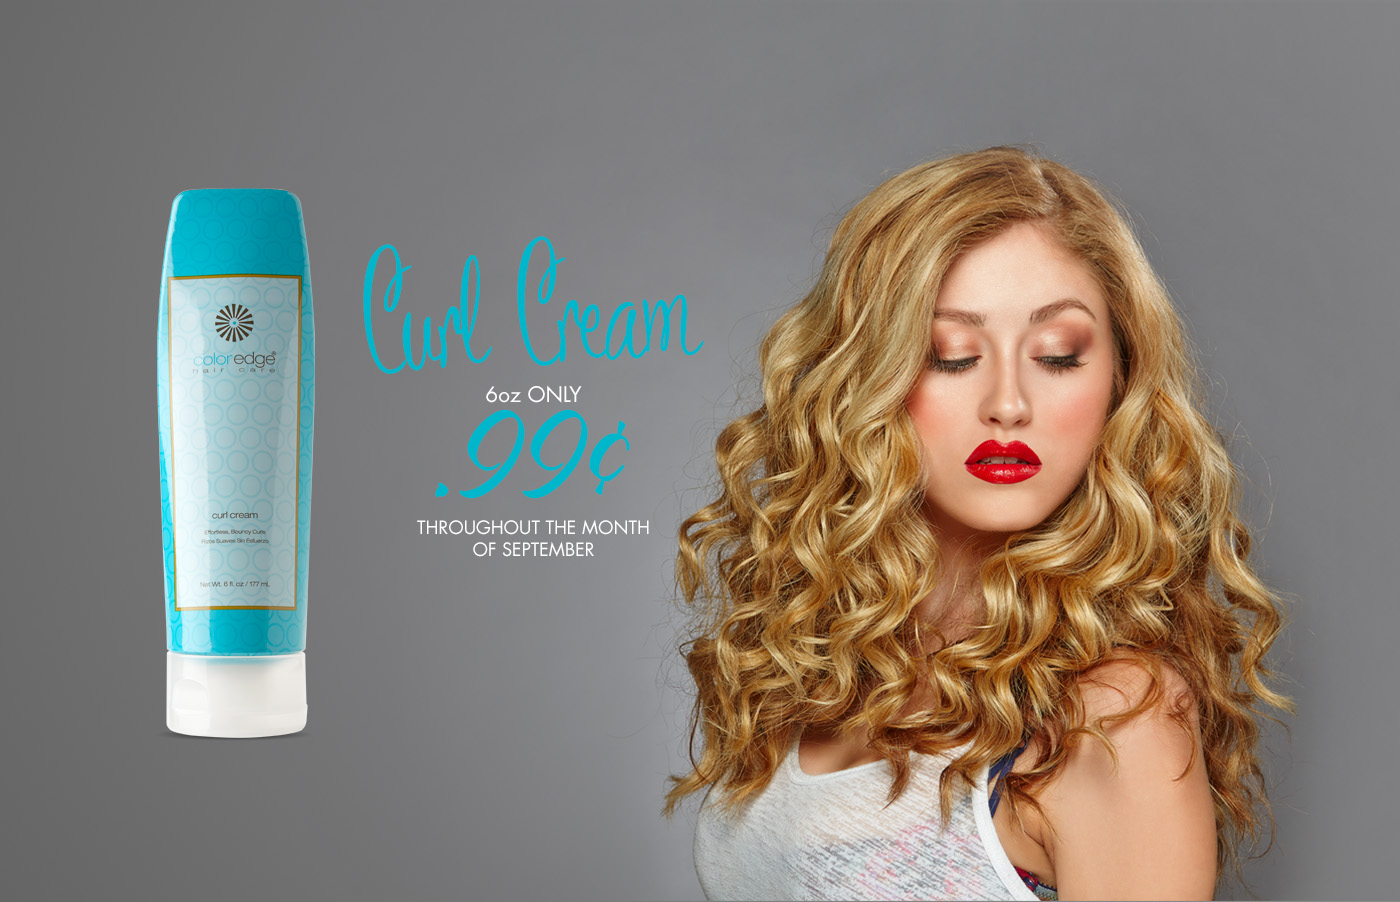 CurlCream